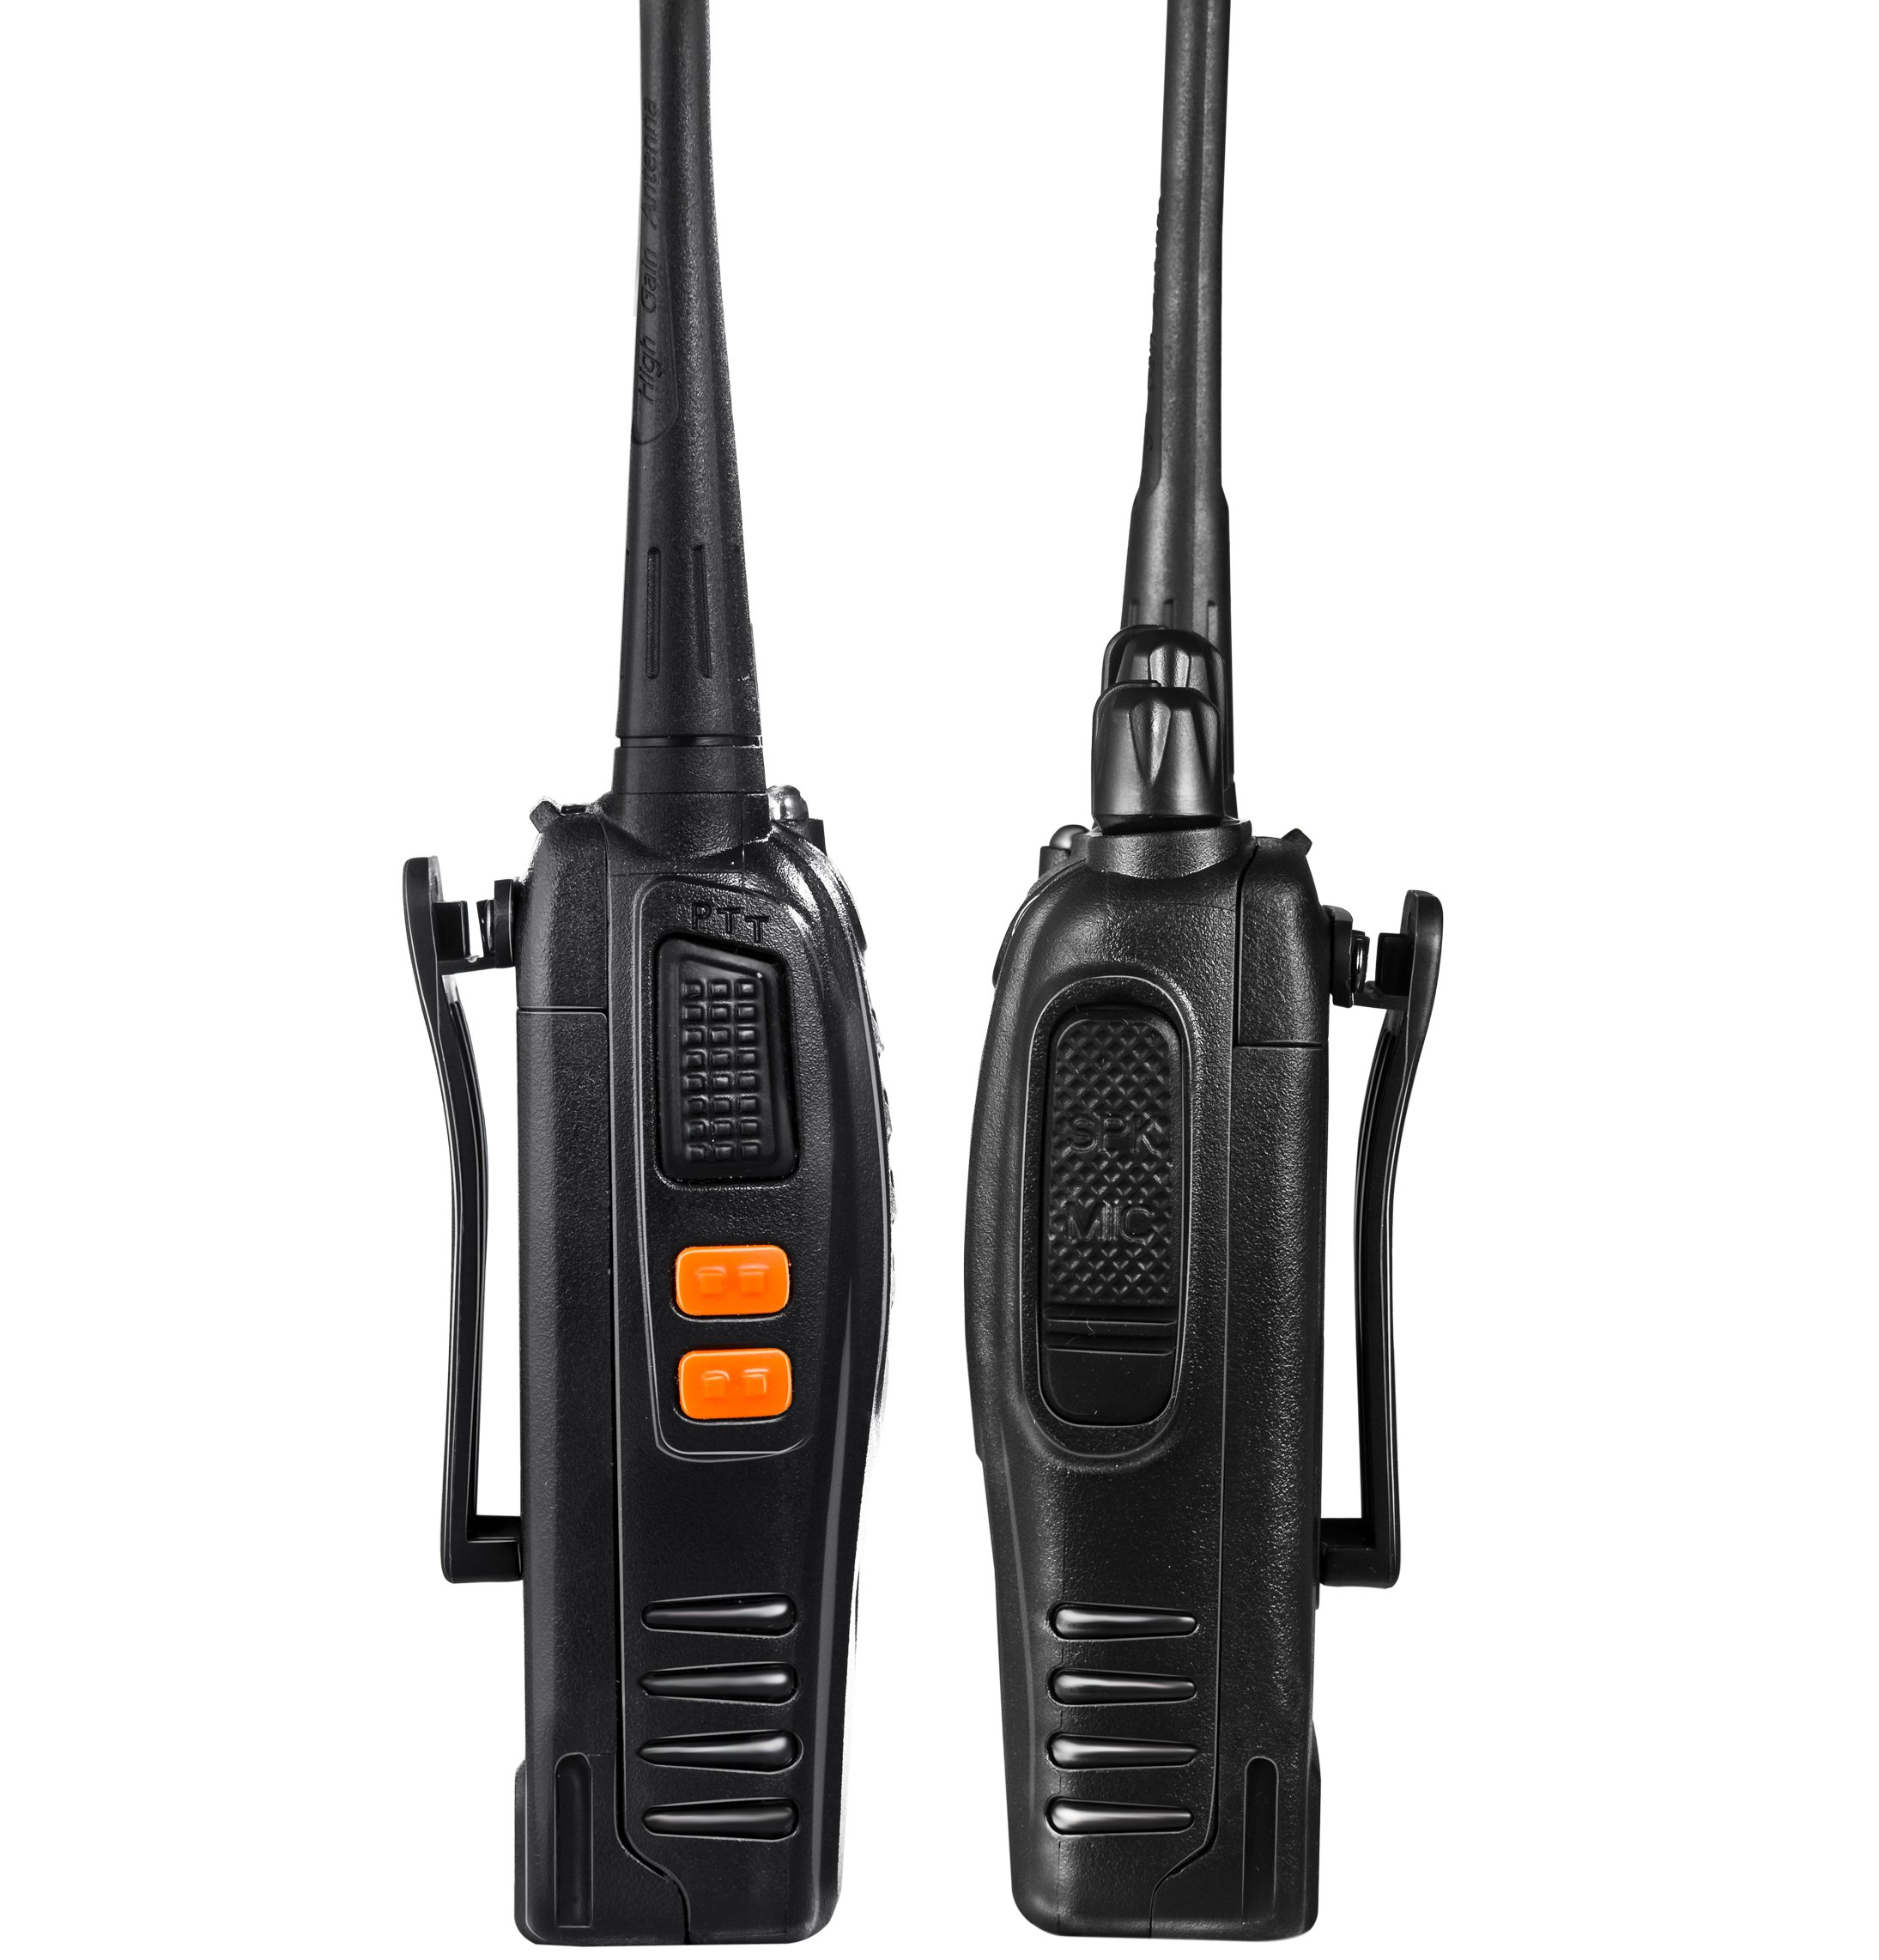 Arcshell Rechargeable Long Range Two-way Radios with Earpiece 2 Pack UHF 400-470Mhz Walkie Talkies Li-ion Battery and Charger included by Arcshell (Image #6)